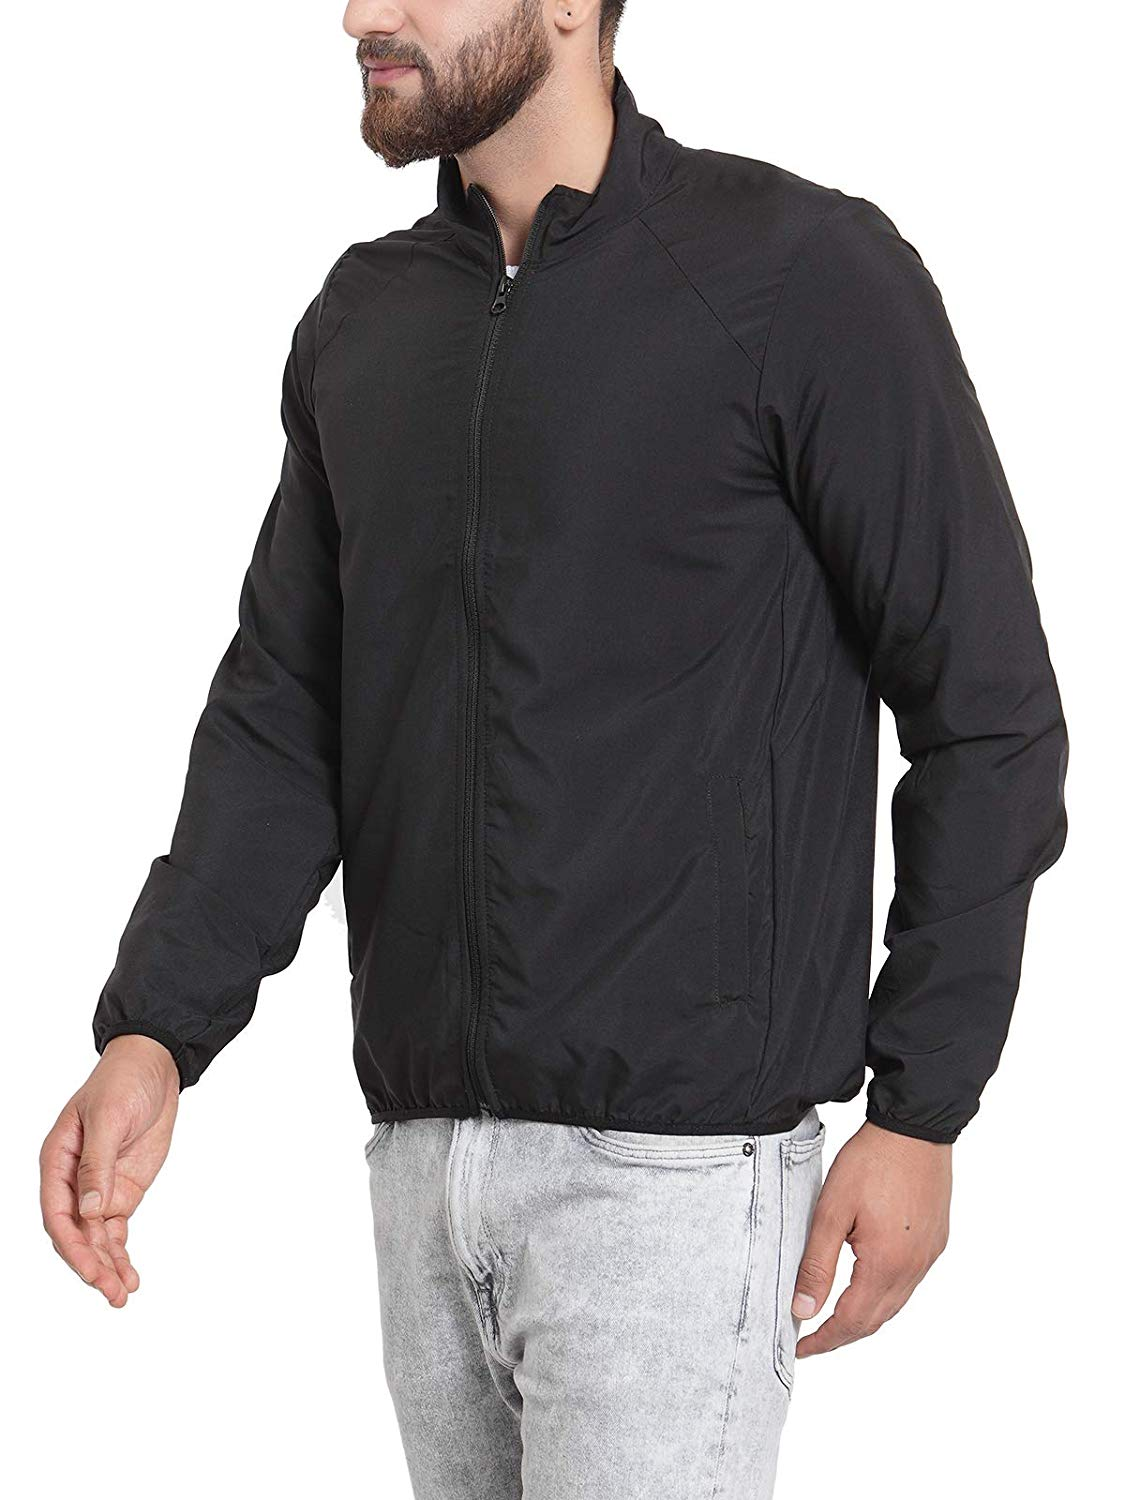 Scott  Offers IDry Signature Style All Weather Jacket for Men